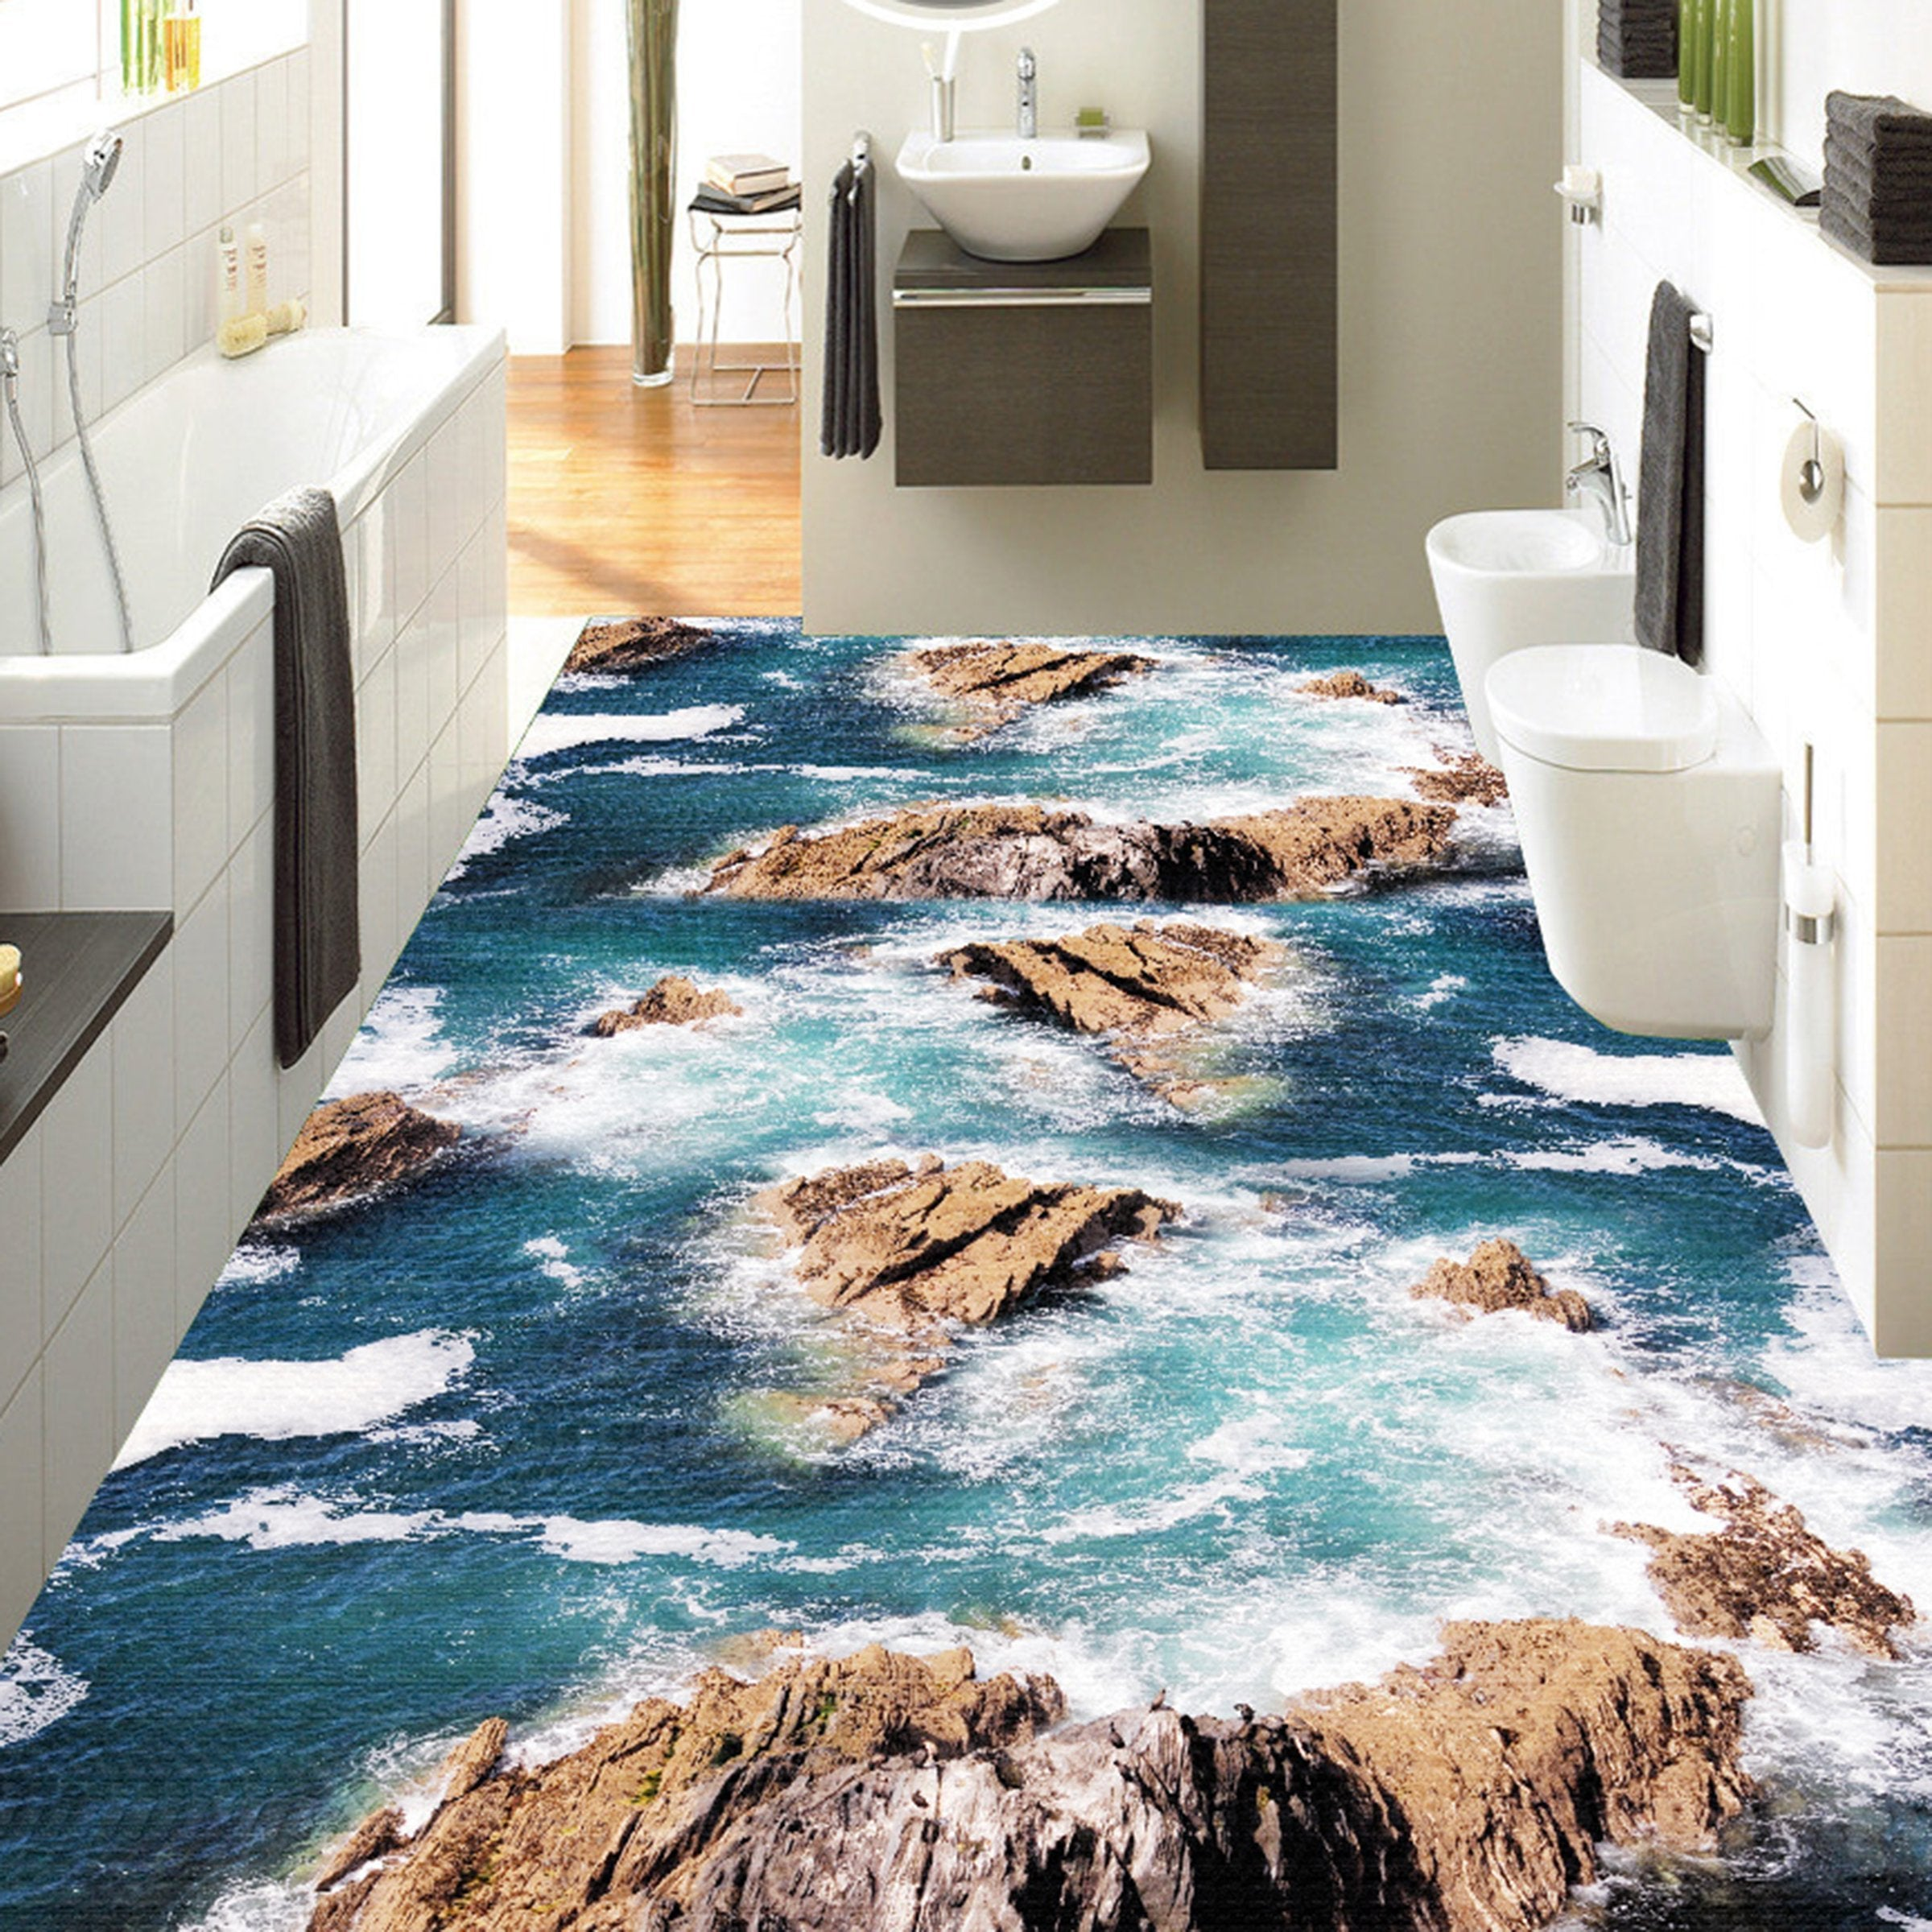 3D Blue Sea Water WG062 Floor Mural